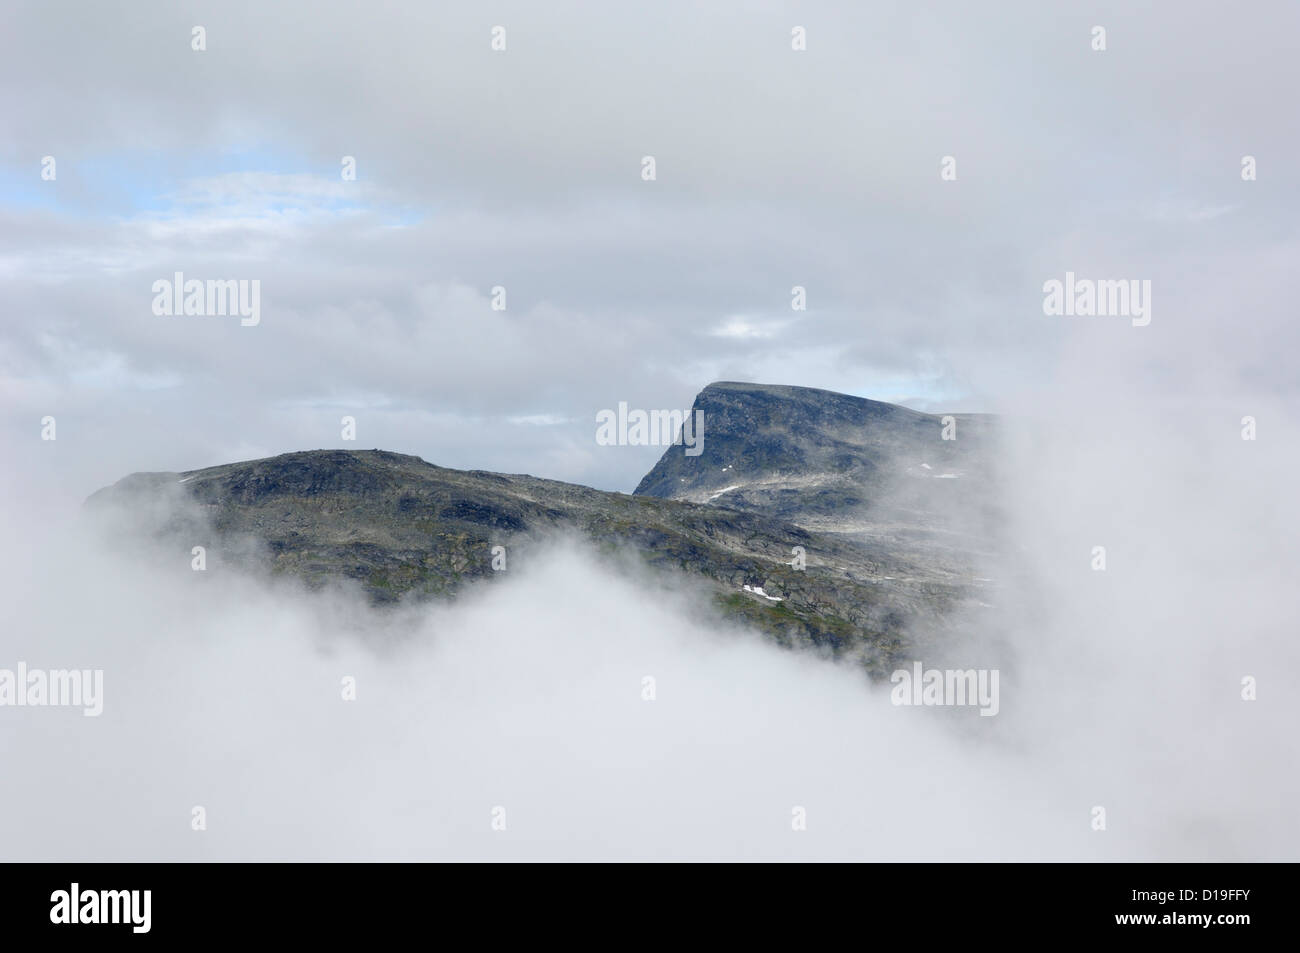 View from Dalsnibba mountain viewpoint, near Geiranger, More og Romsdal, Norway - Stock Image